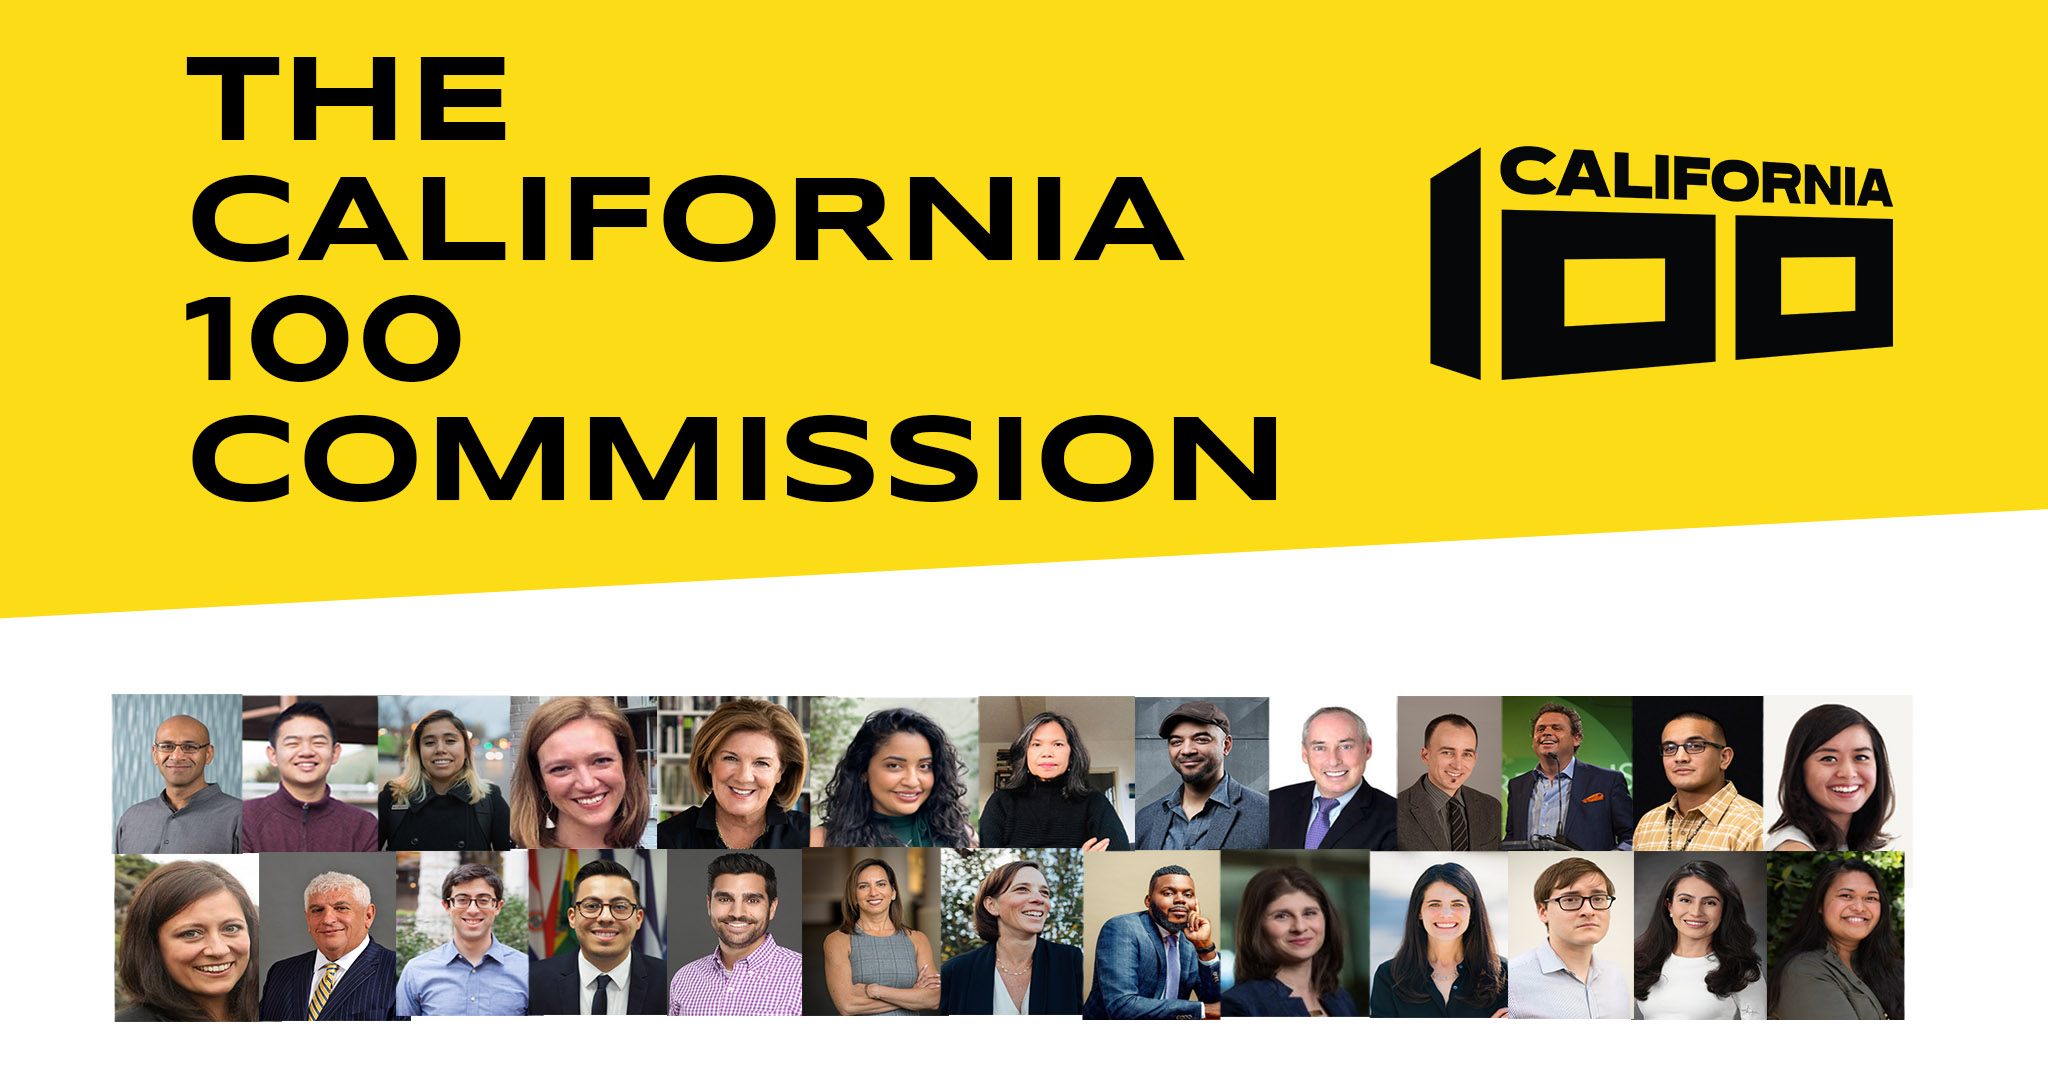 California 100 Announces the Selection of an Intergenerational Commission of Experts to Guide its Work